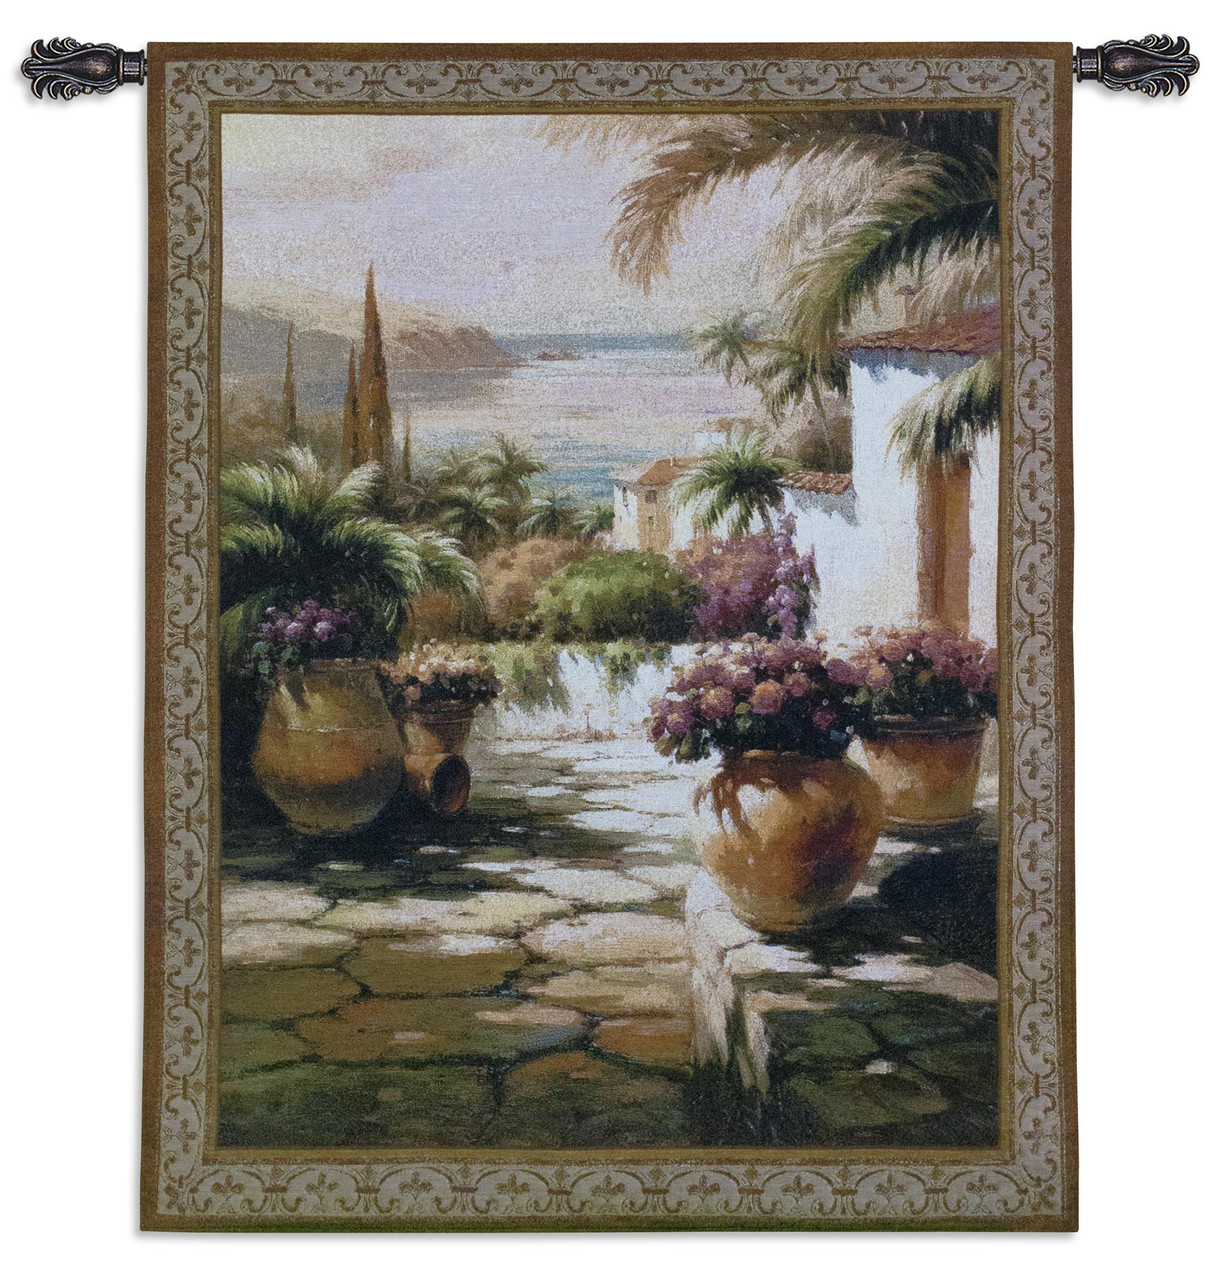 Courtyard View I Woven Tapestry Wall Art Hanging Contemporary Tuscan Villa Harbor Mediterranean Seascape 100 Cotton Usa Size 53x38